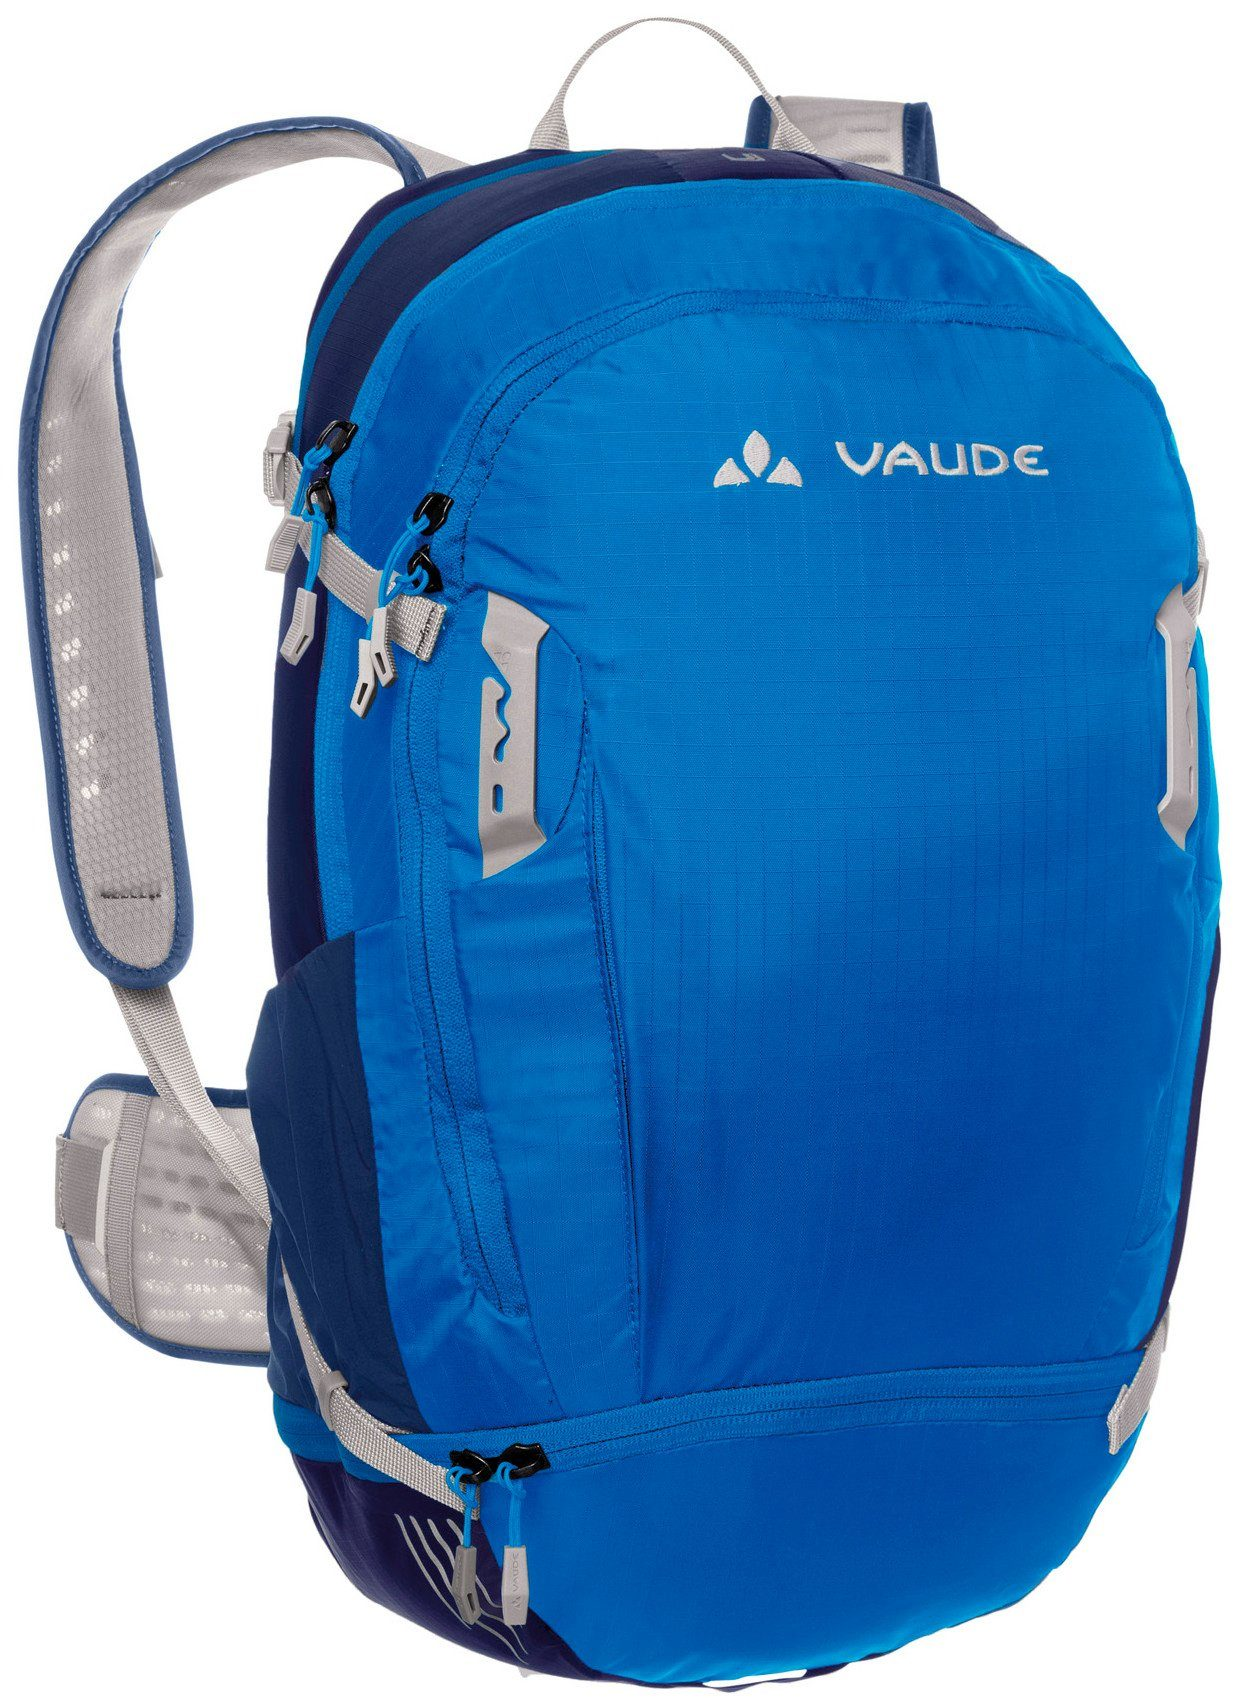 VAUDE Rucksack »Bike Alpin 25+5 Backpack«